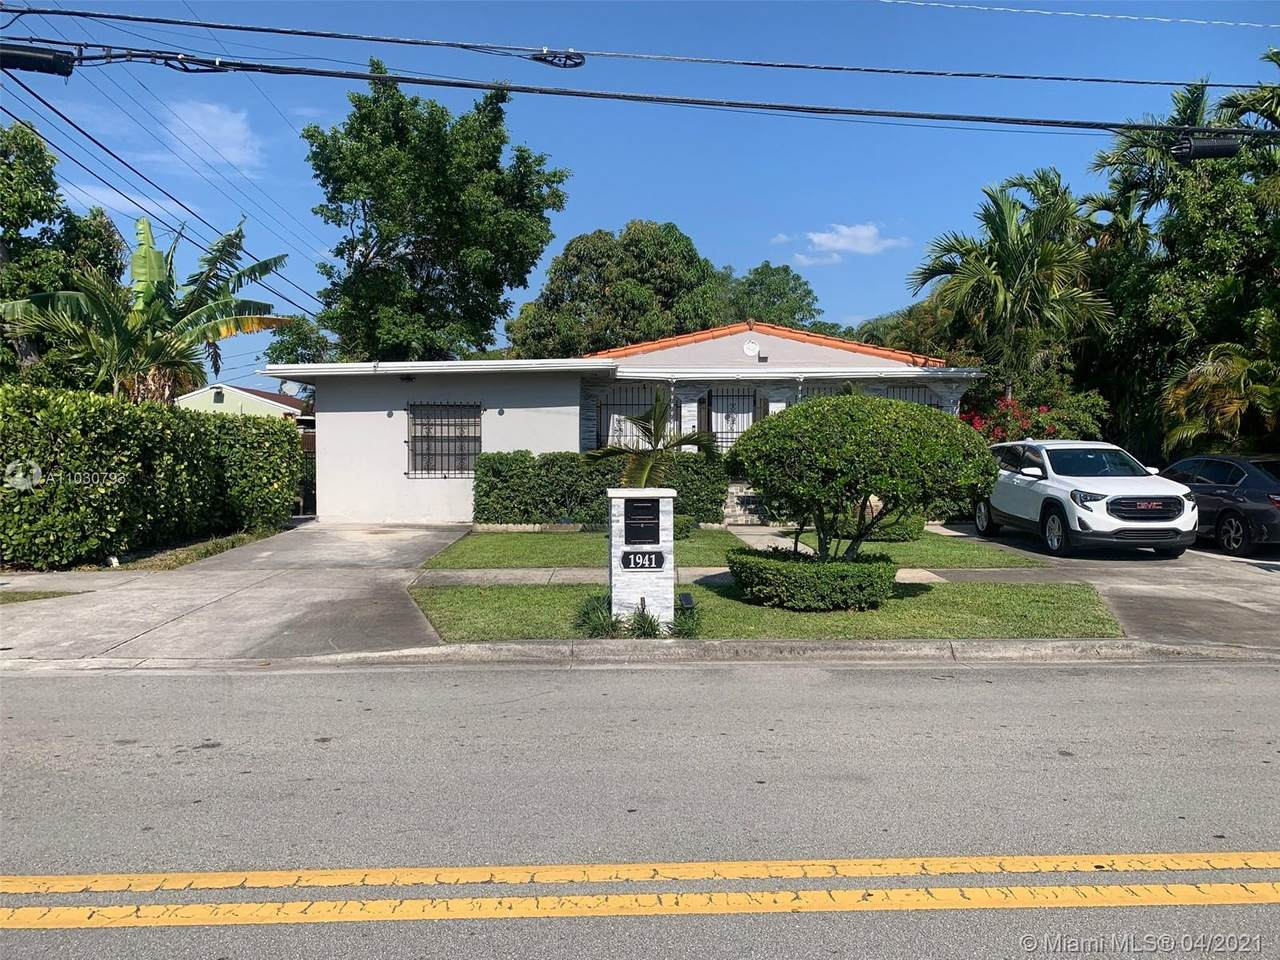 1941 5th Ave - Photo 1